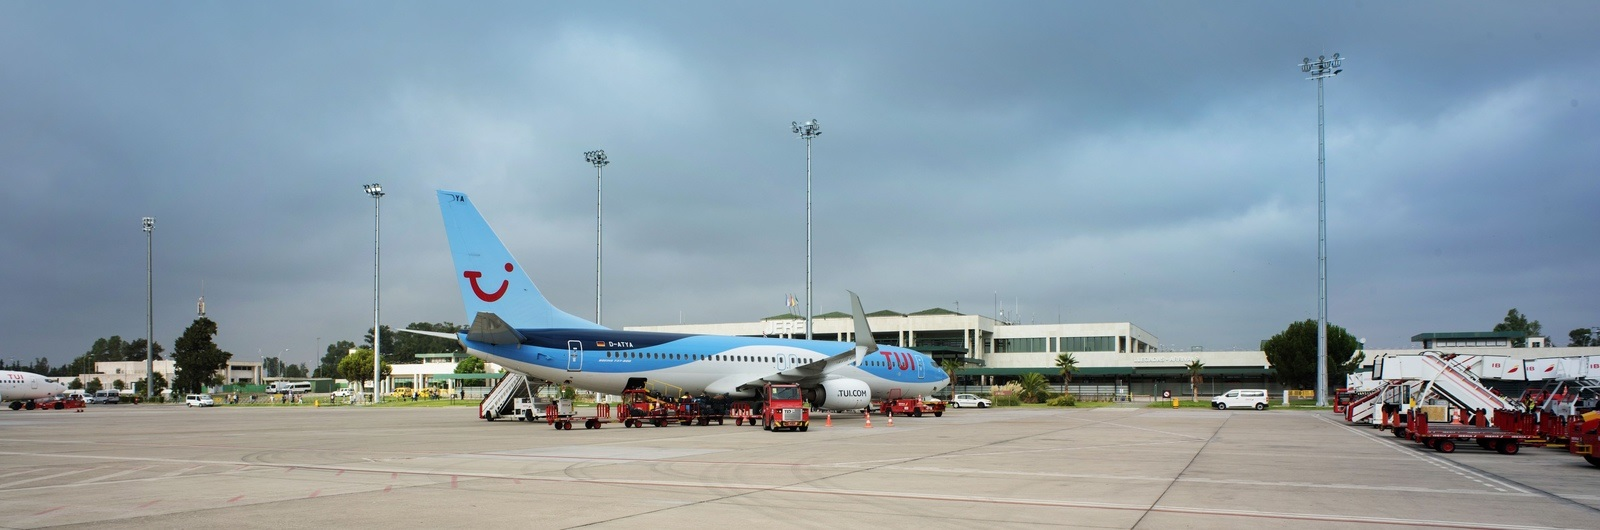 jerez airport header